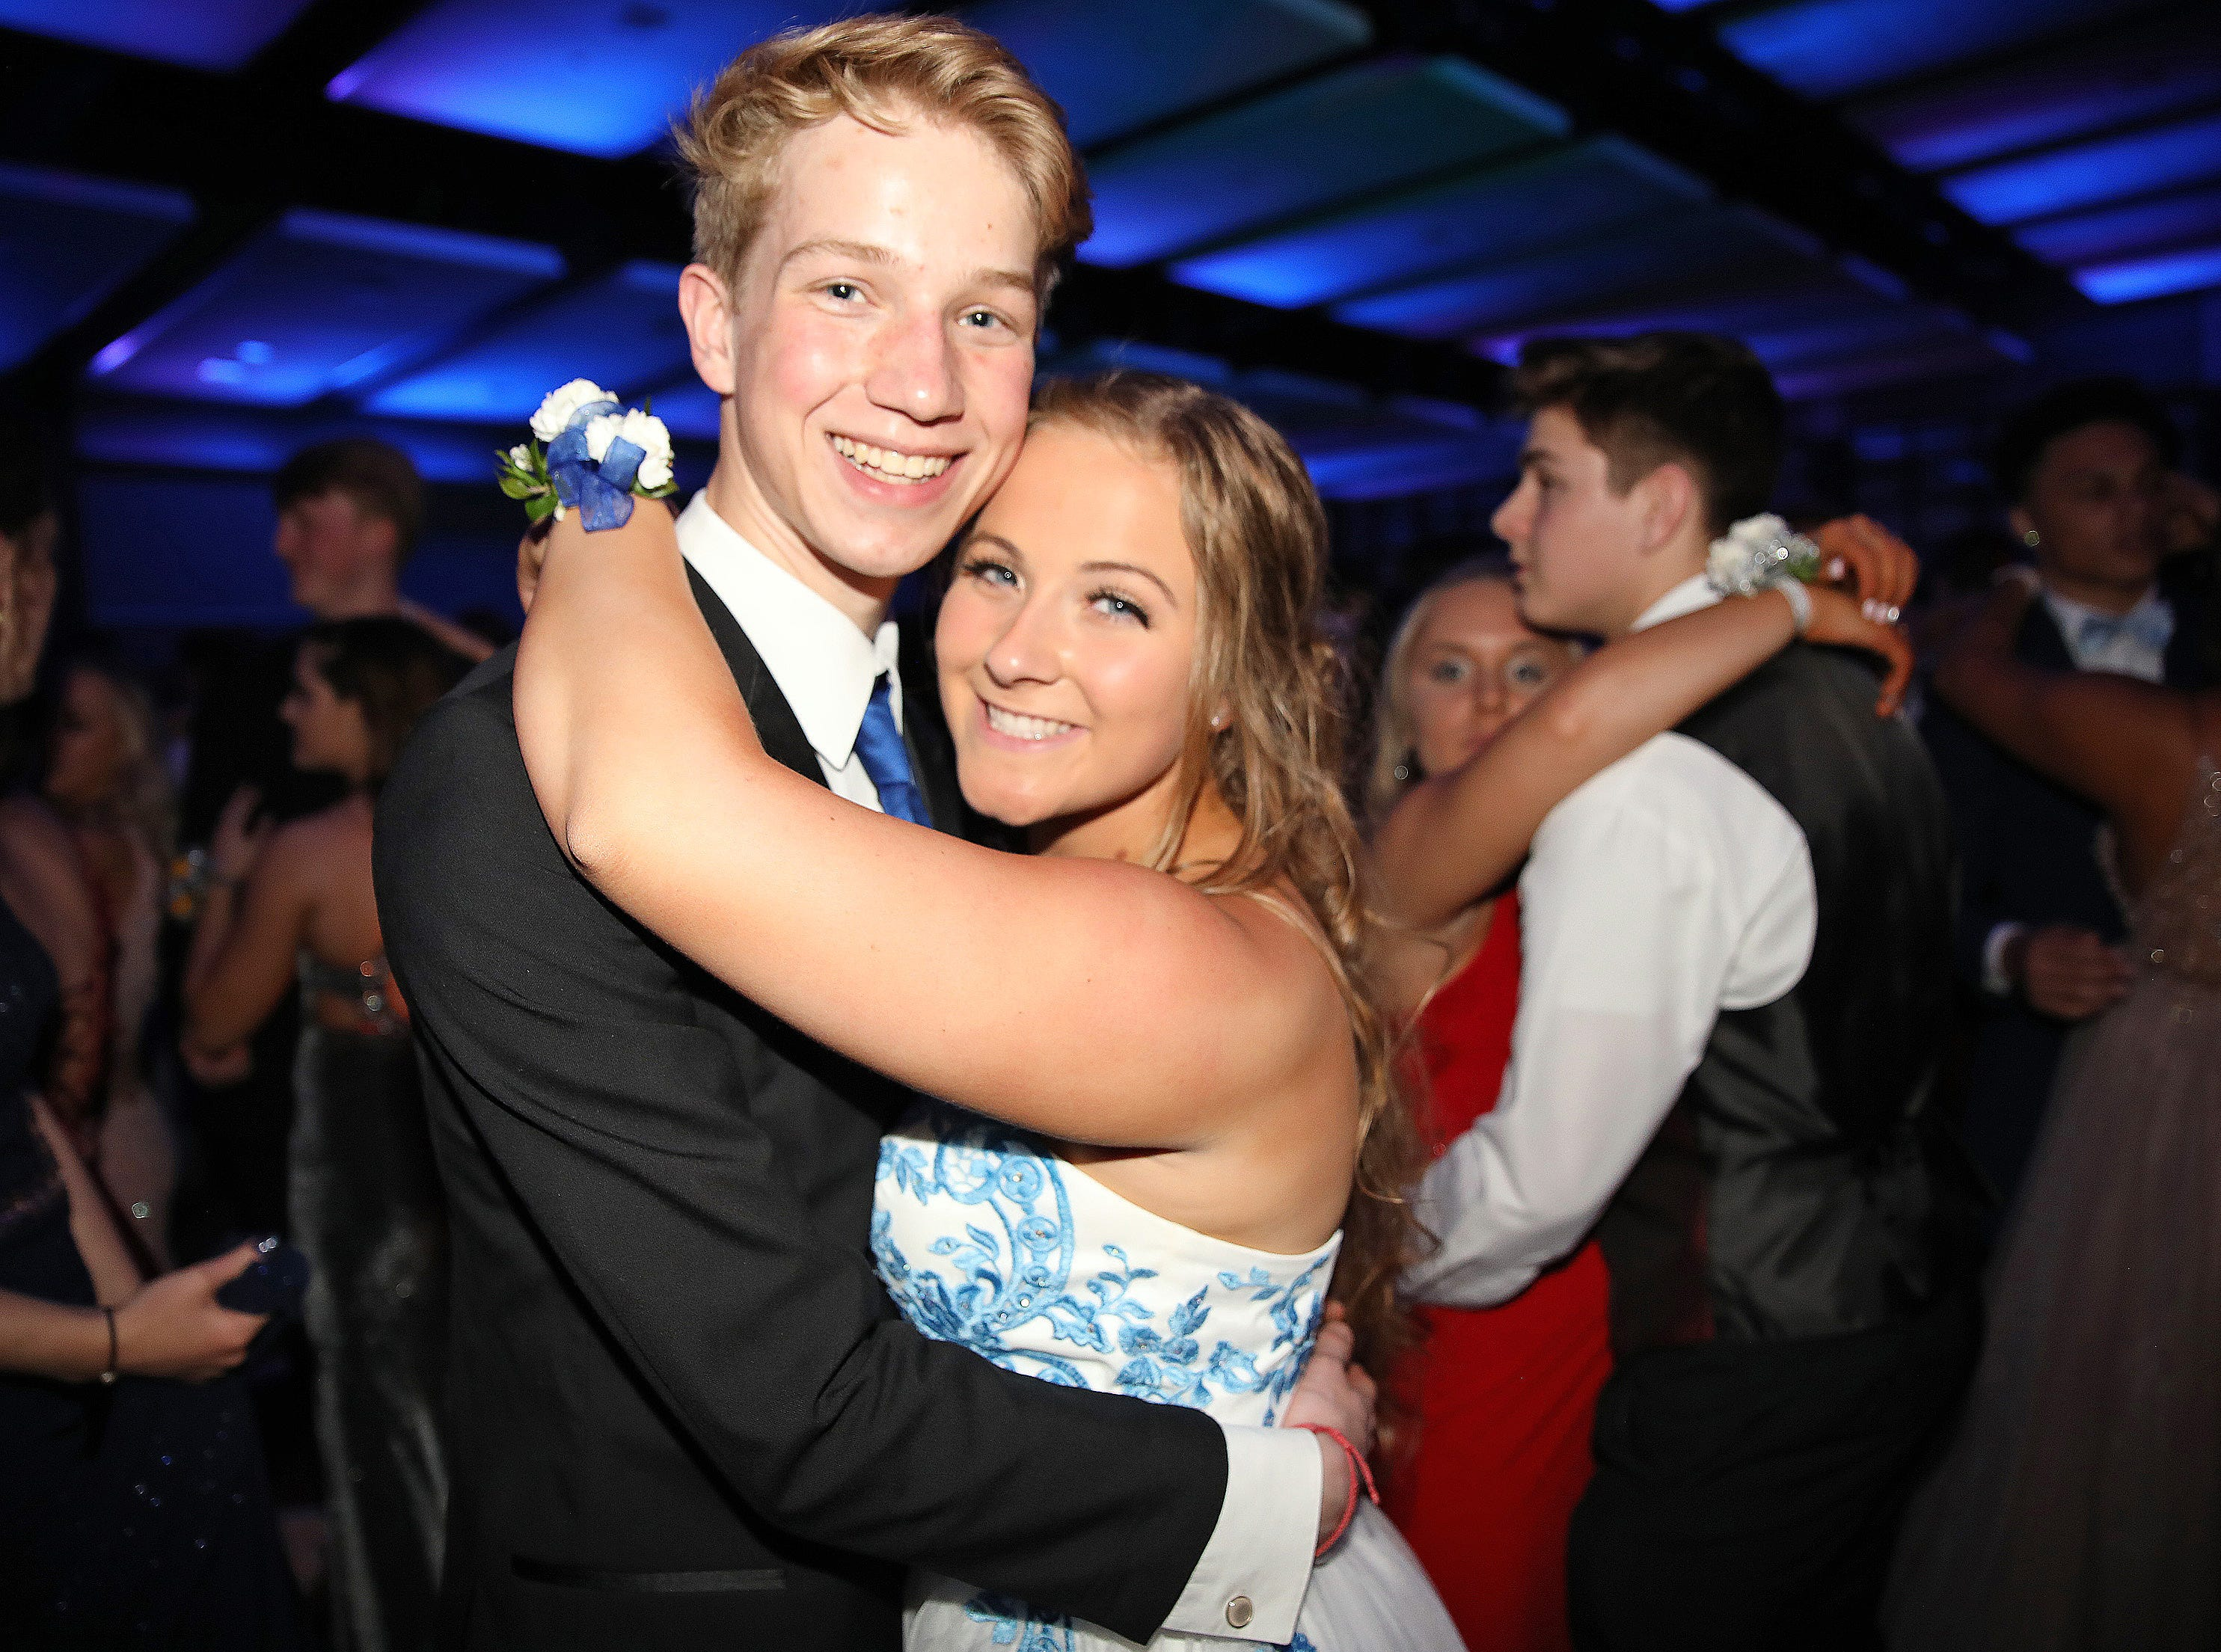 Parker Meier and Lucy Leinen enjoy dancing at the Waukee High School Prom at the Ron Pearson Center in West Des Moines on Saturday, April 6, 2019.